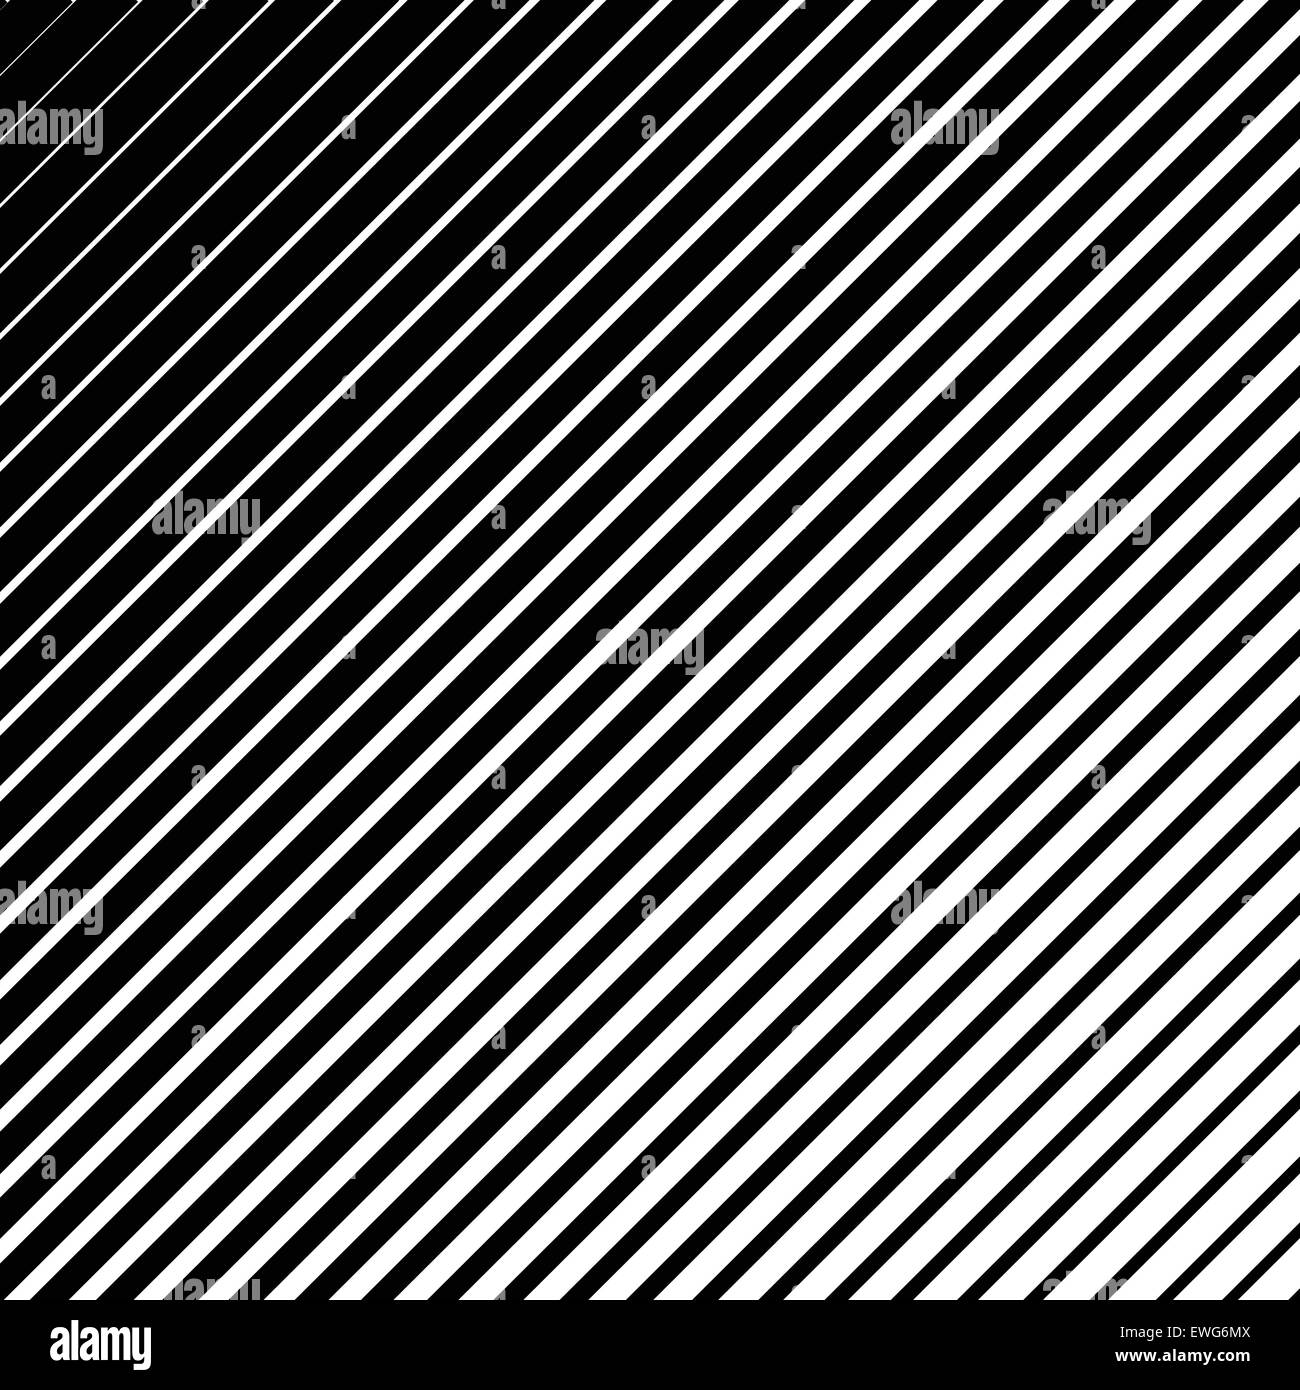 Line Texture Vector : Lined pattern lines background oblique diagonal